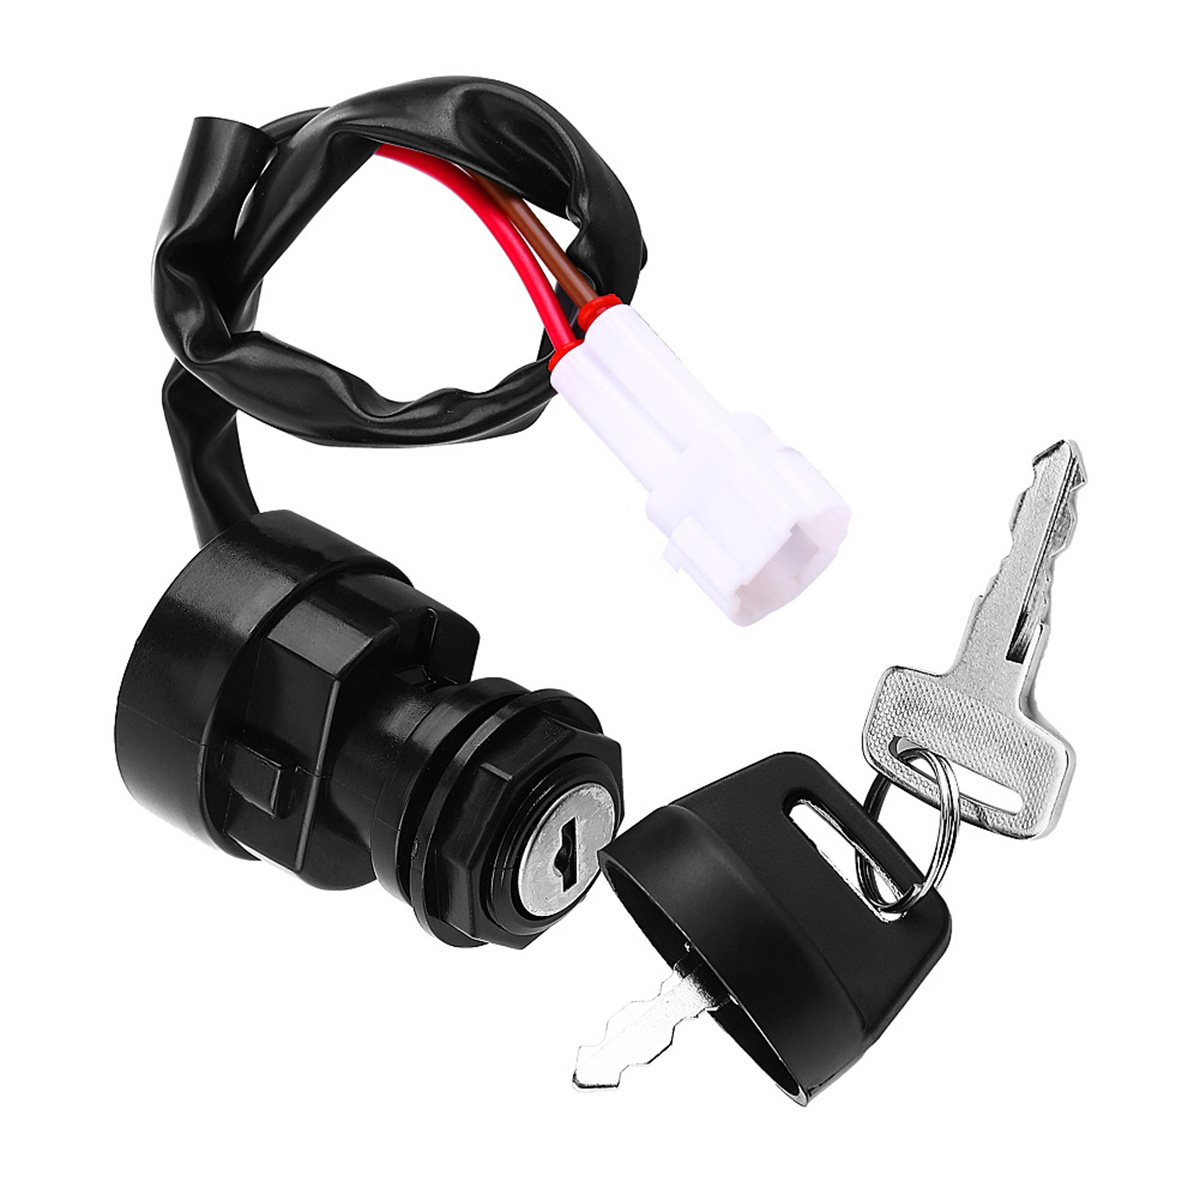 Ignition Switch 2 Pin Motorcycle ATV Ignition Key Switch For Yamaha YFM 350 Bruin 660R 700R Raptor 350X Warrior